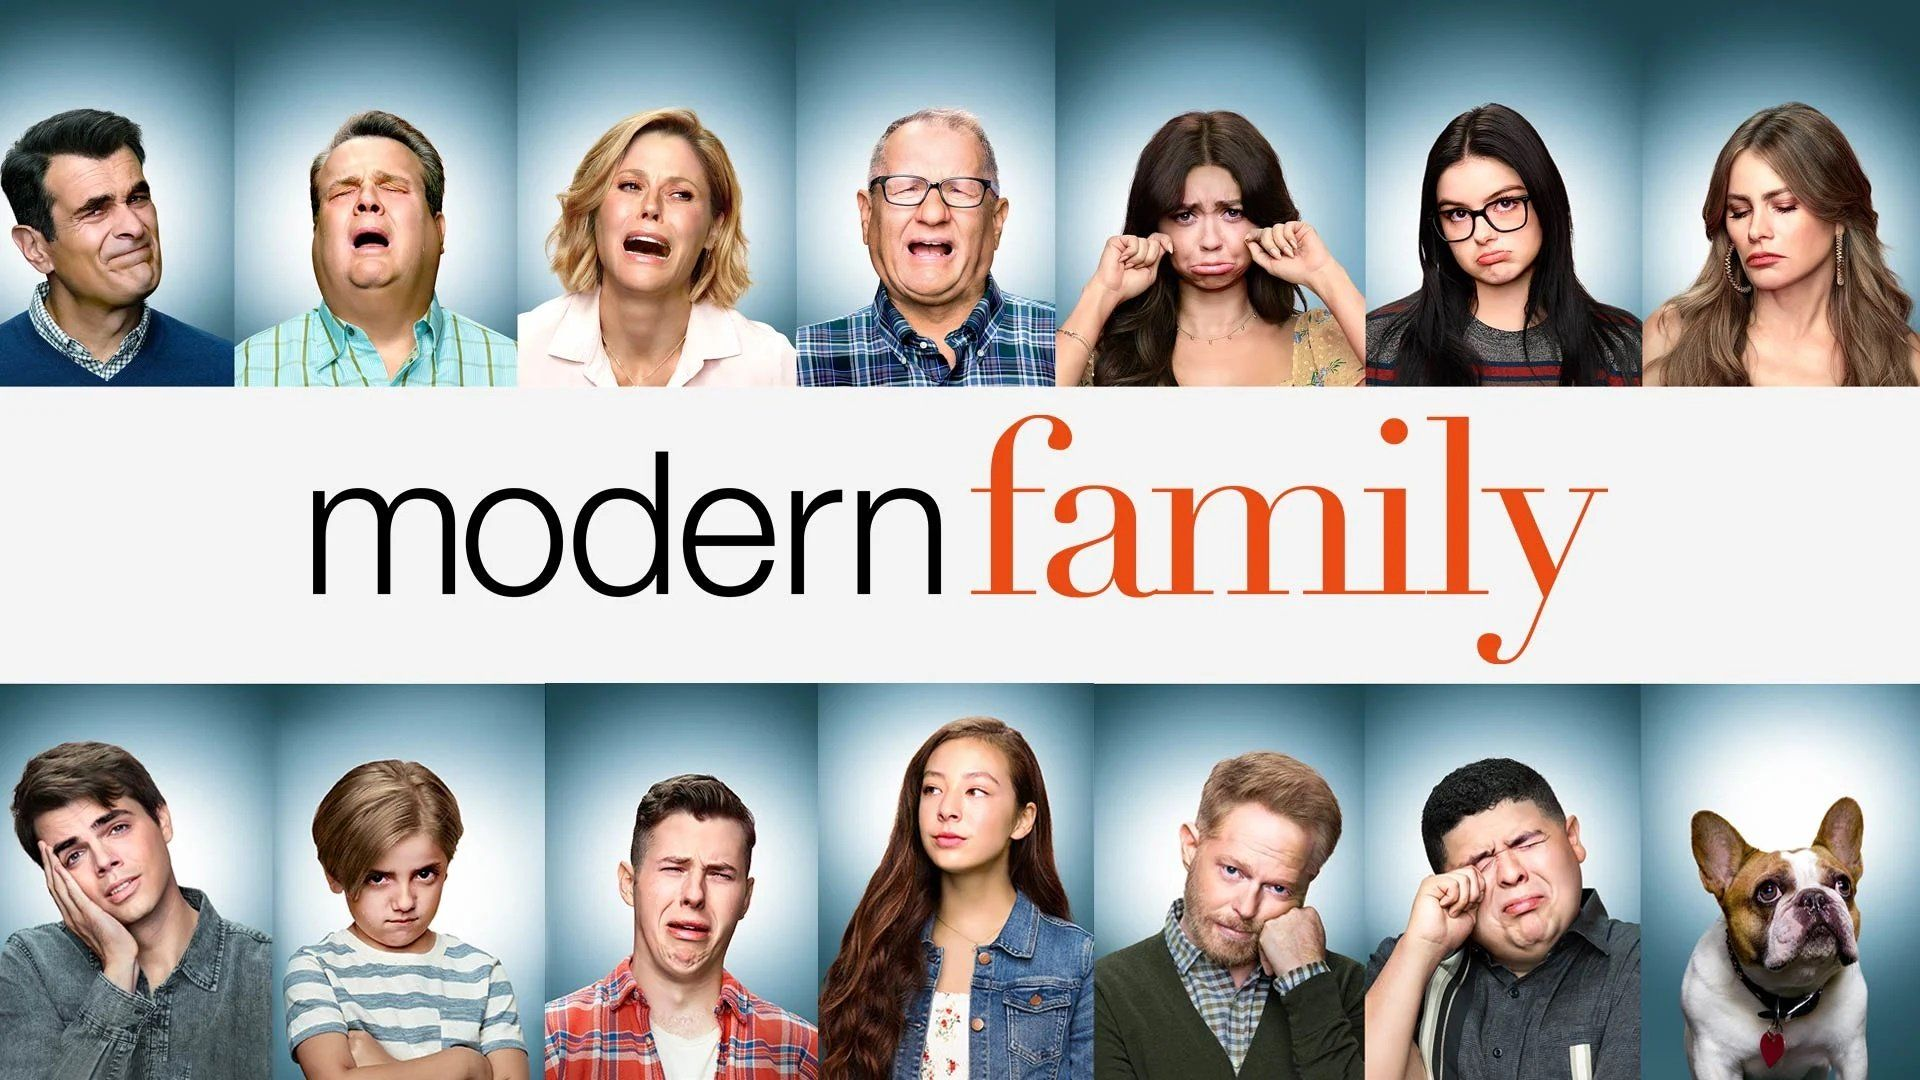 Modern Family Season 12 Release Date Renewal Status Story Updates And Other Details In 2020 Modern Family Modern Family Tv Show Modern Family Luke